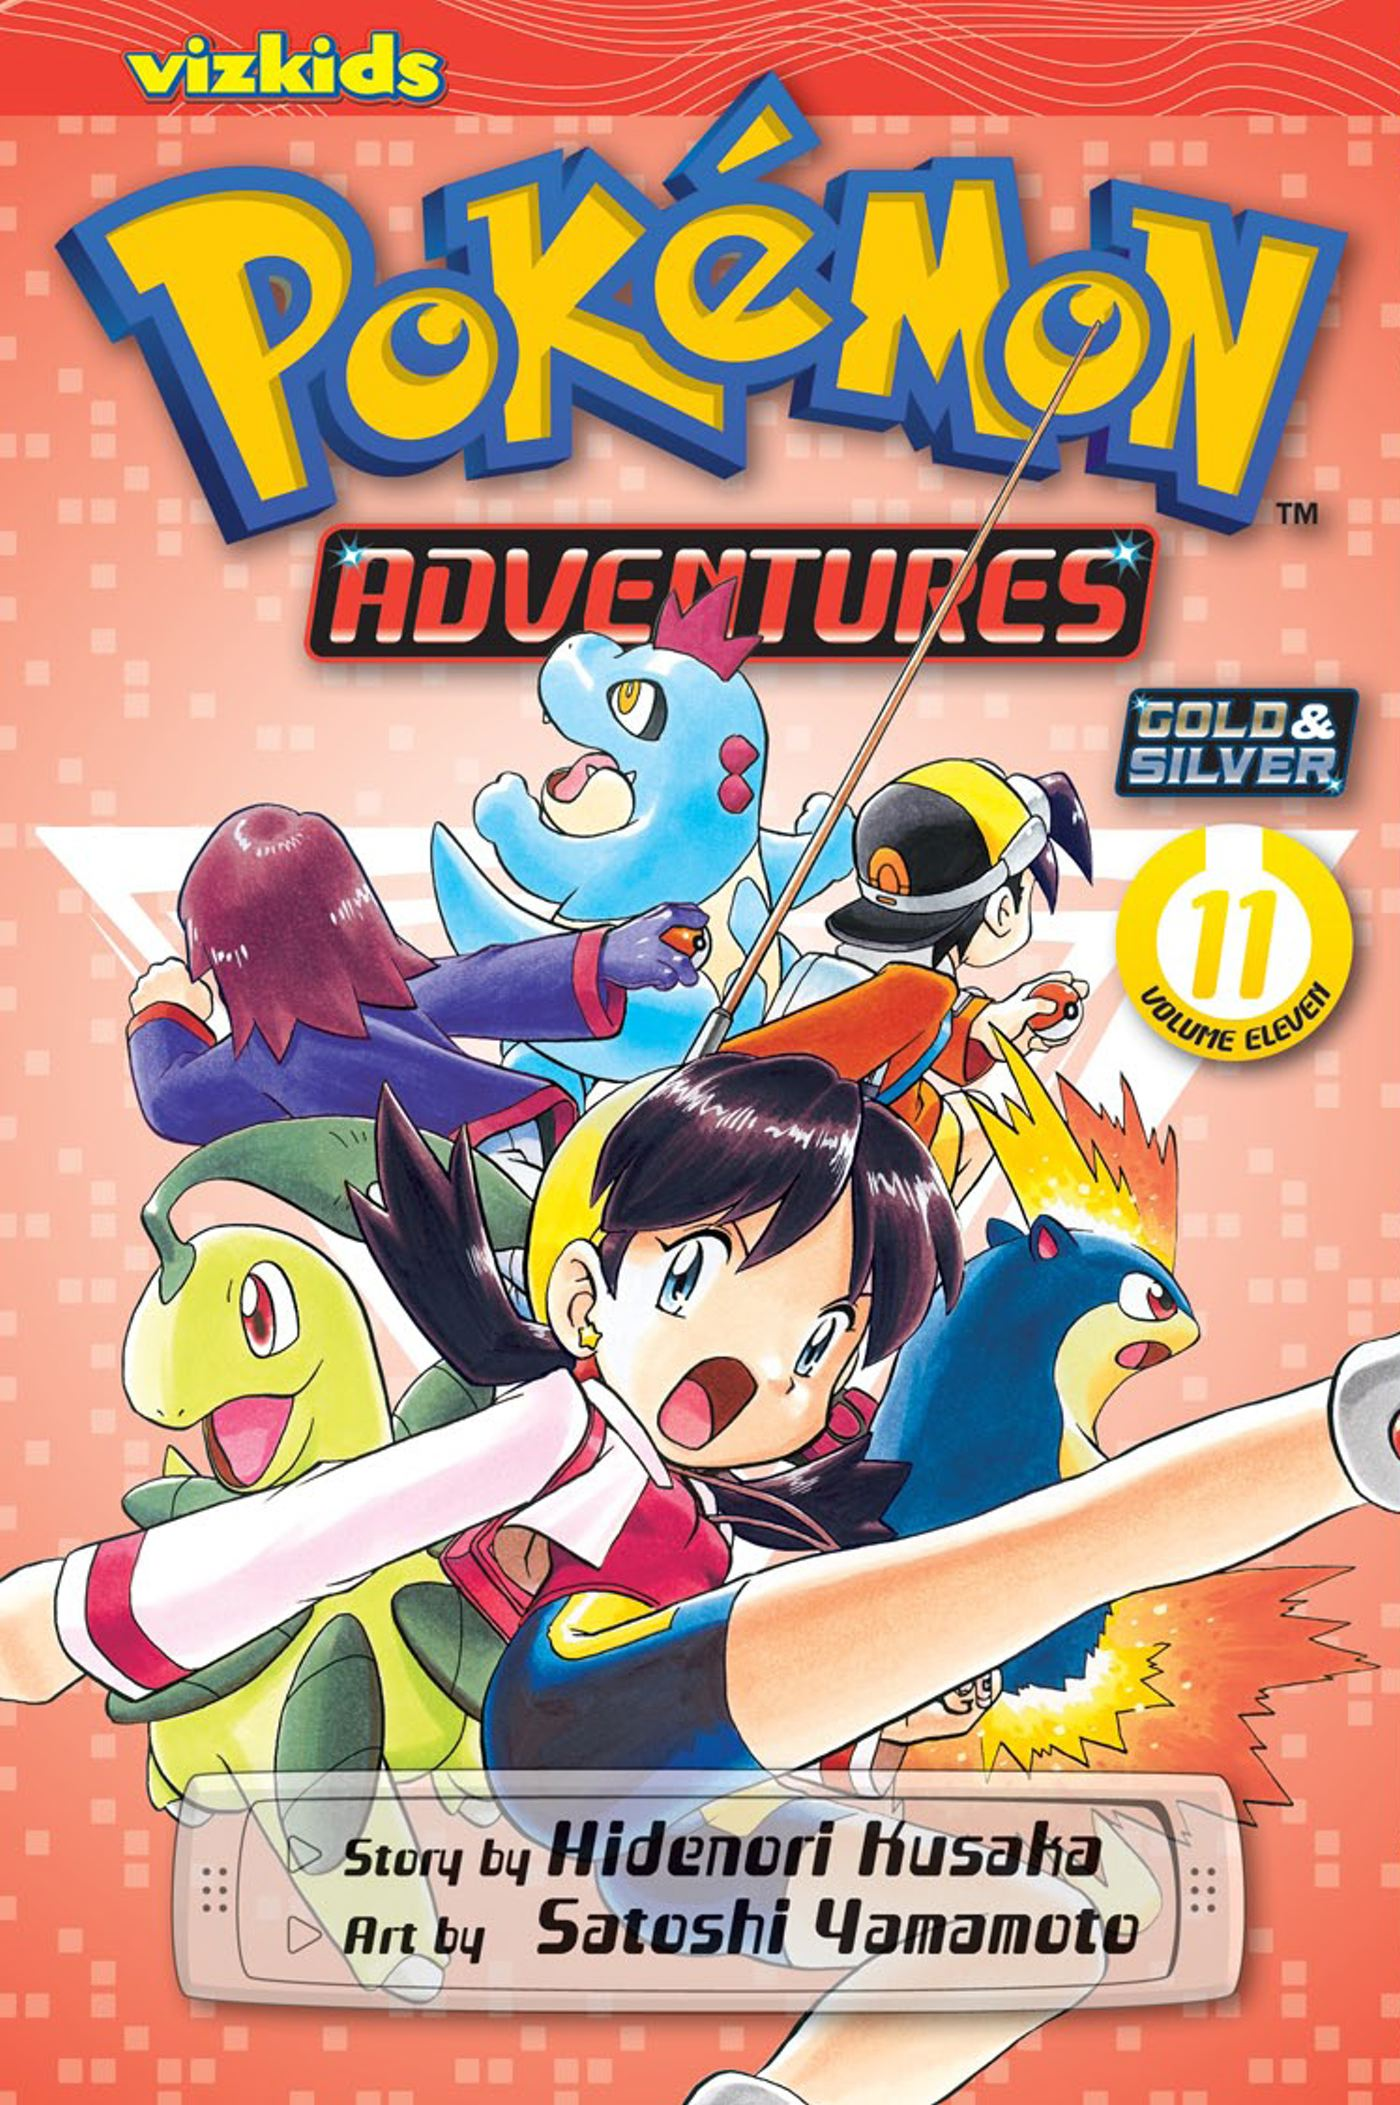 Pokemon adventures vol 11 9781421535456 hr